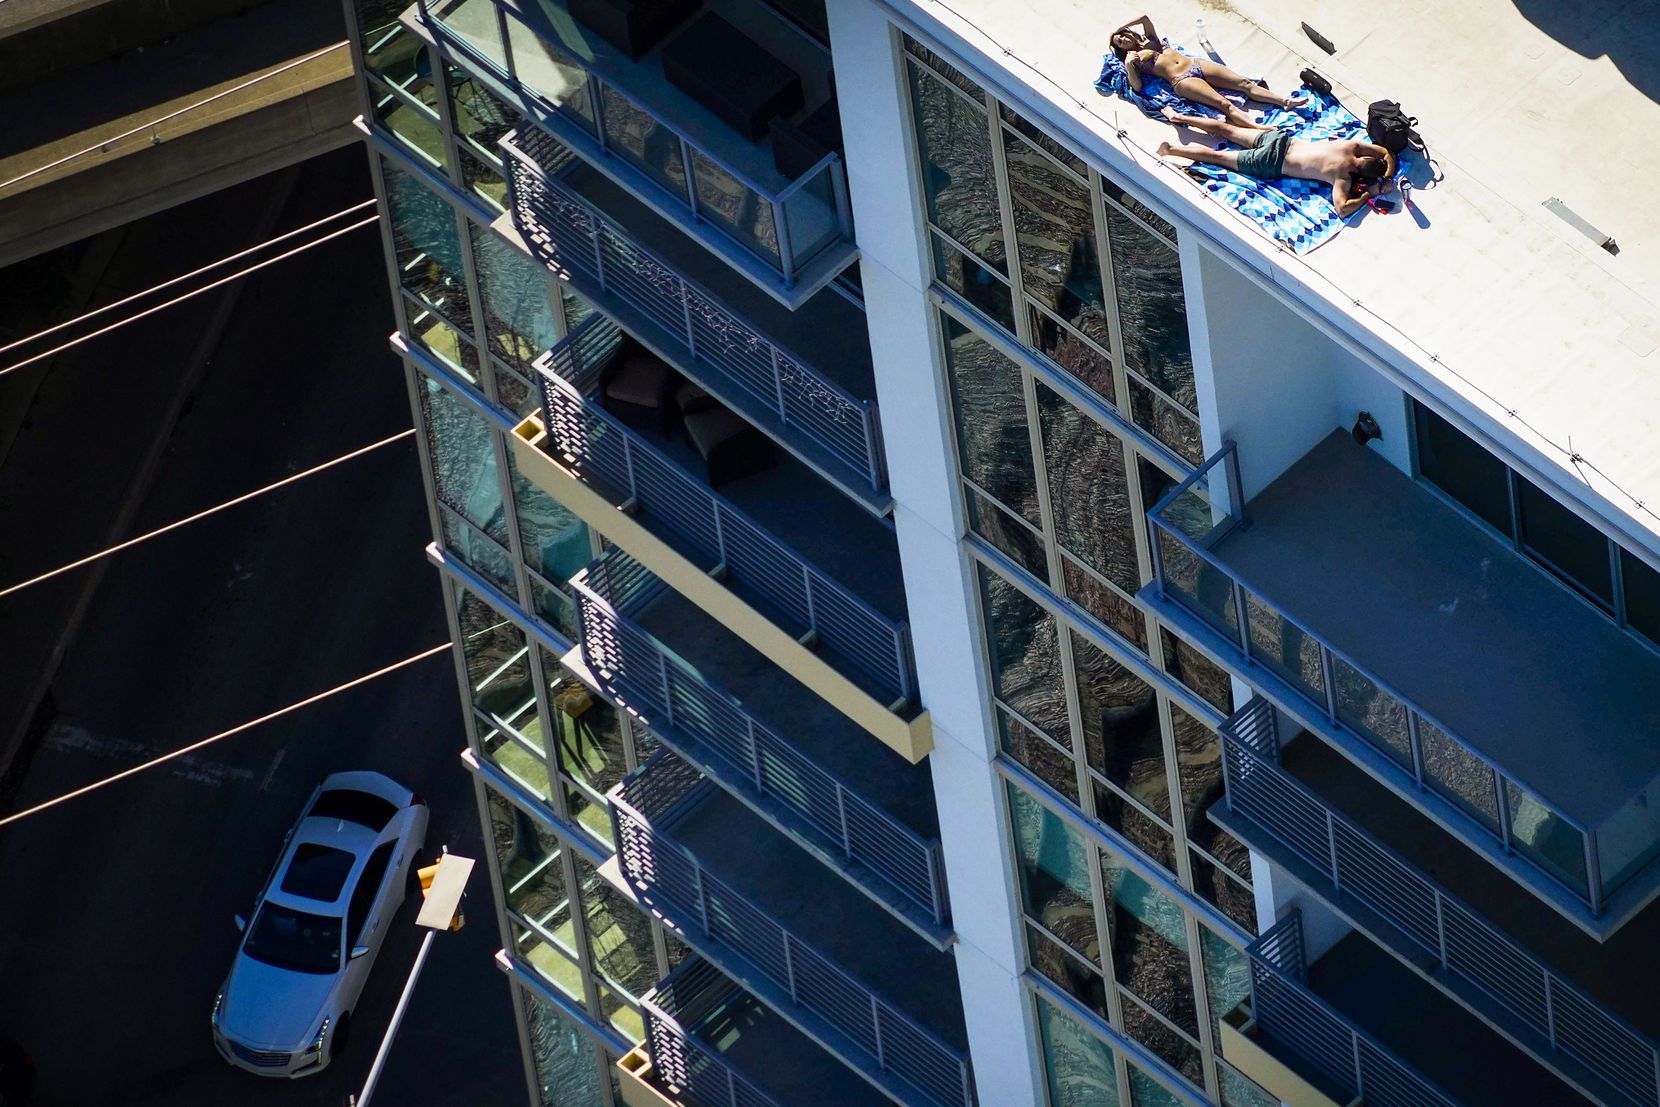 A couple sunned on the roof of The Katy in Victory Park Apartments as Dallas County's shelter-in-place order began in March. It required residents to stay home unless doing essential activities or jobs.